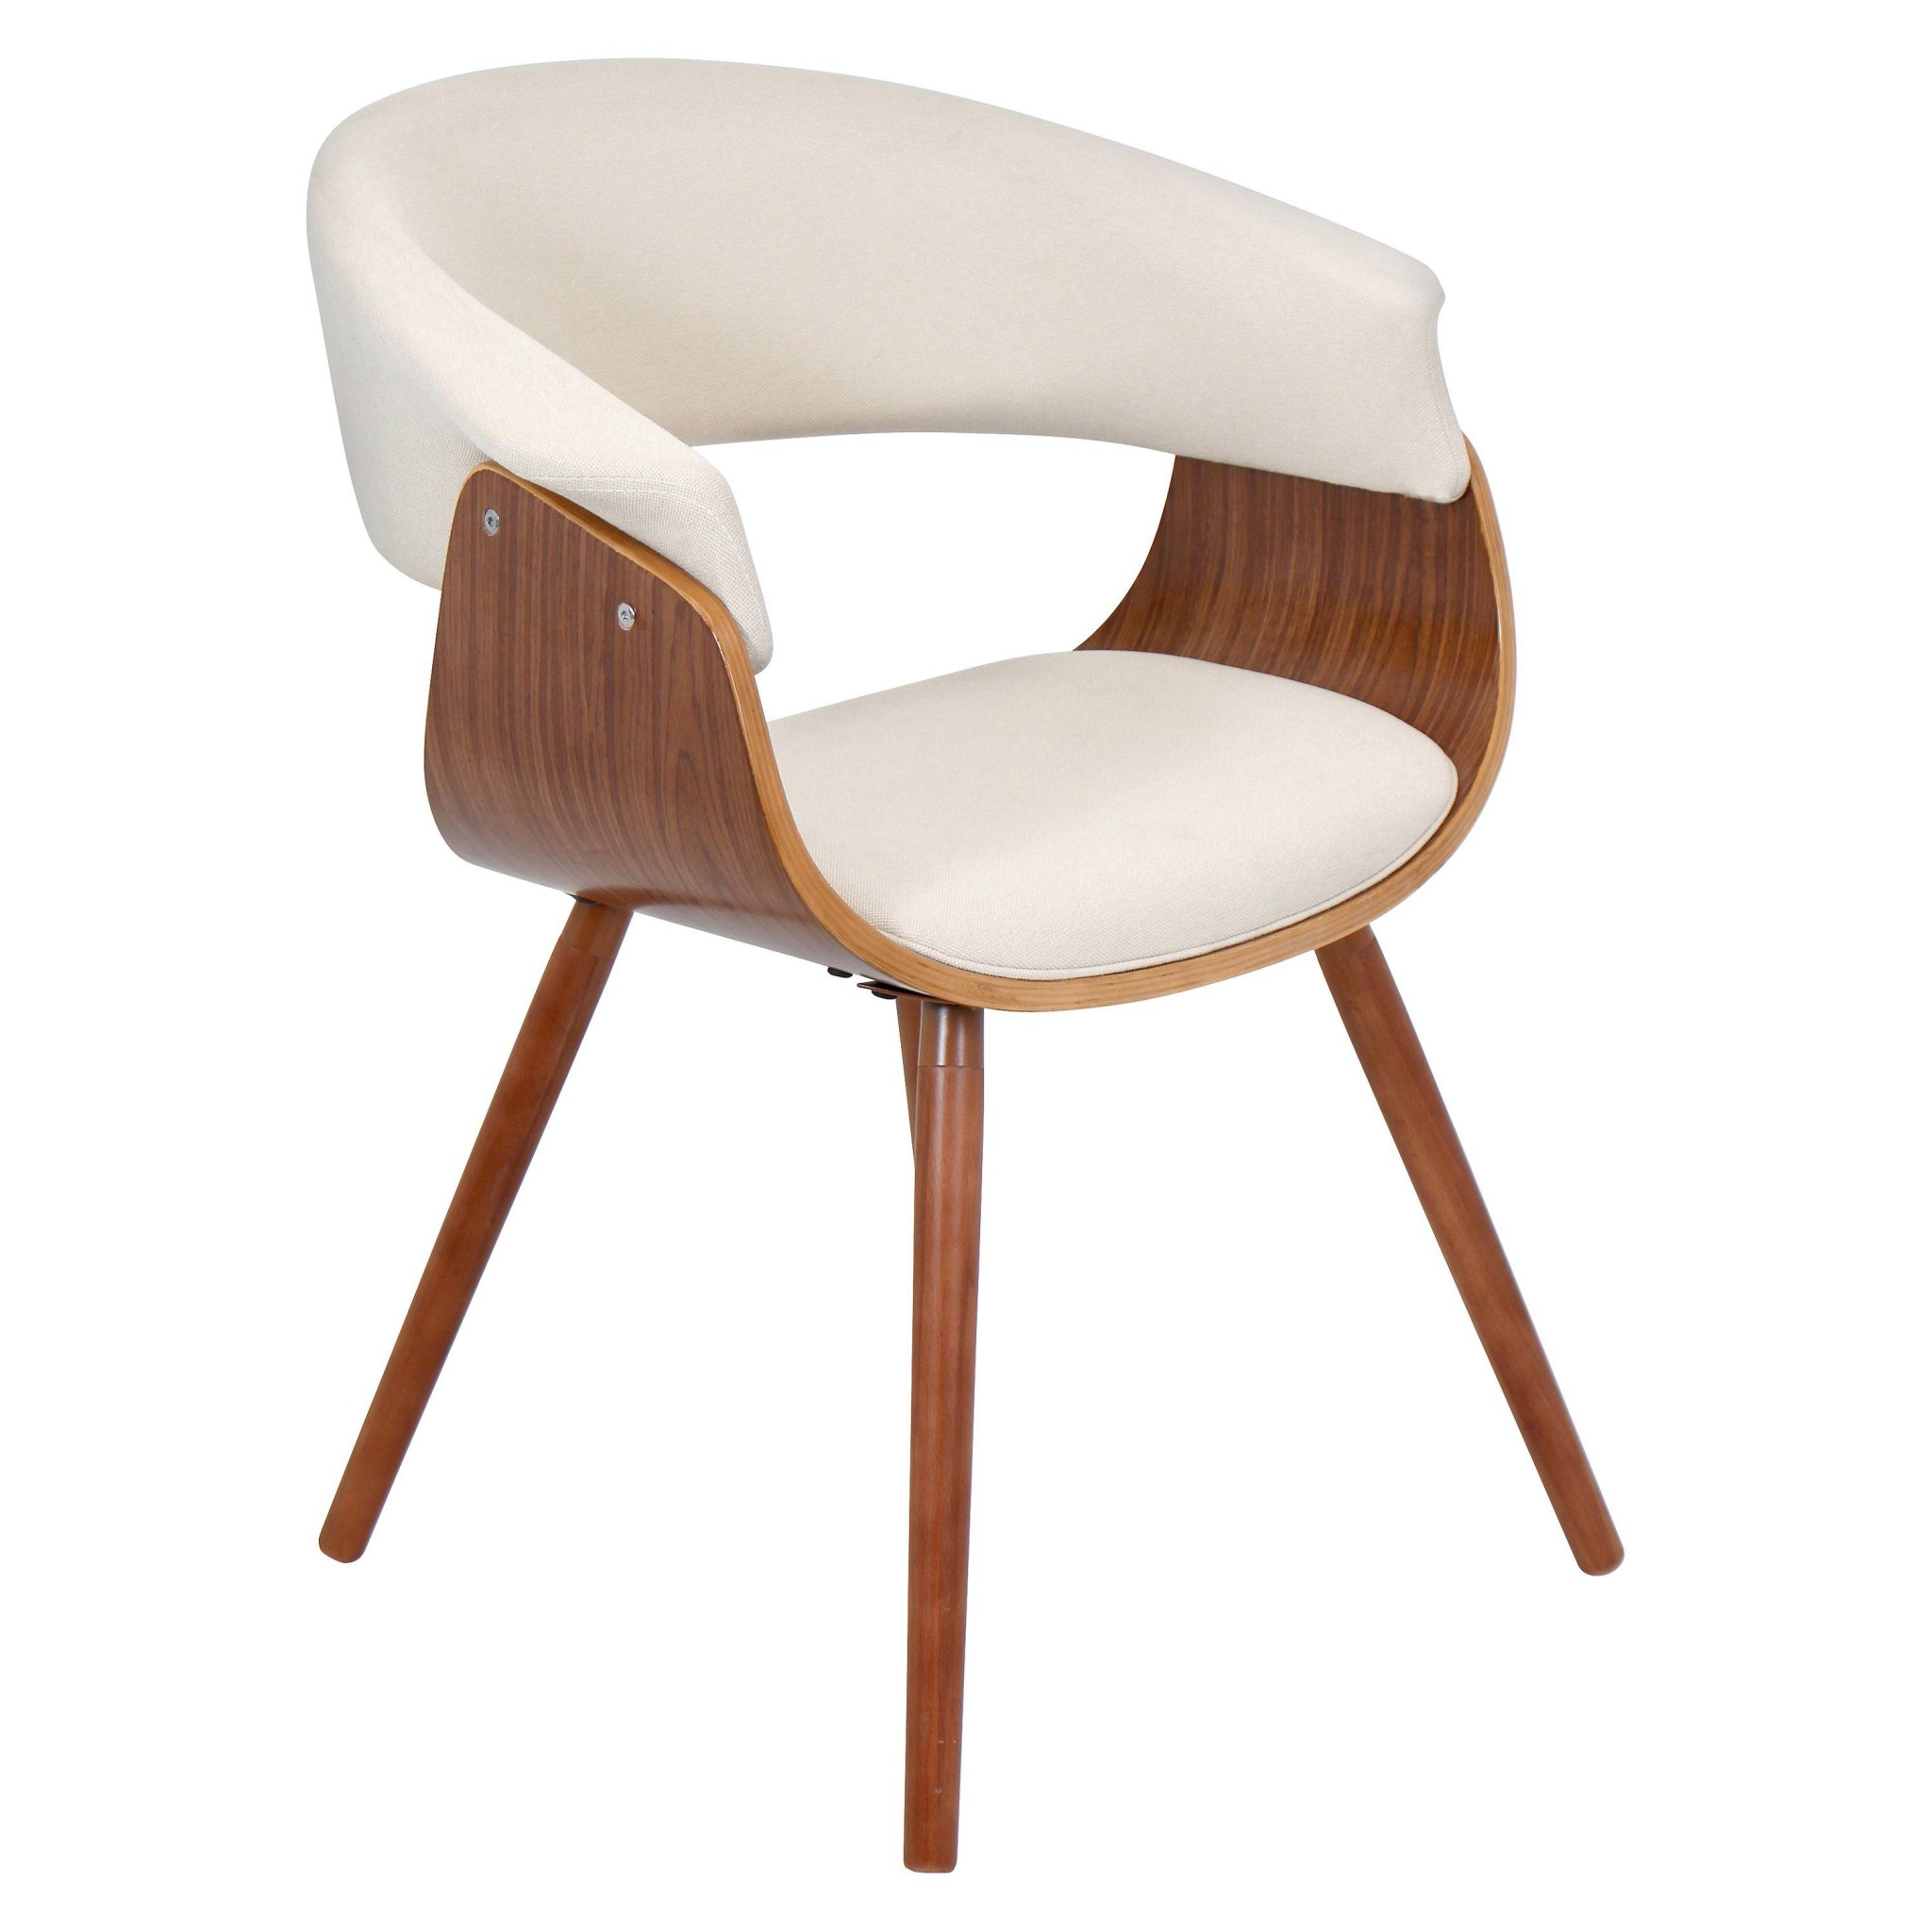 Lumisource Vintage Mod Dining Chair From Target